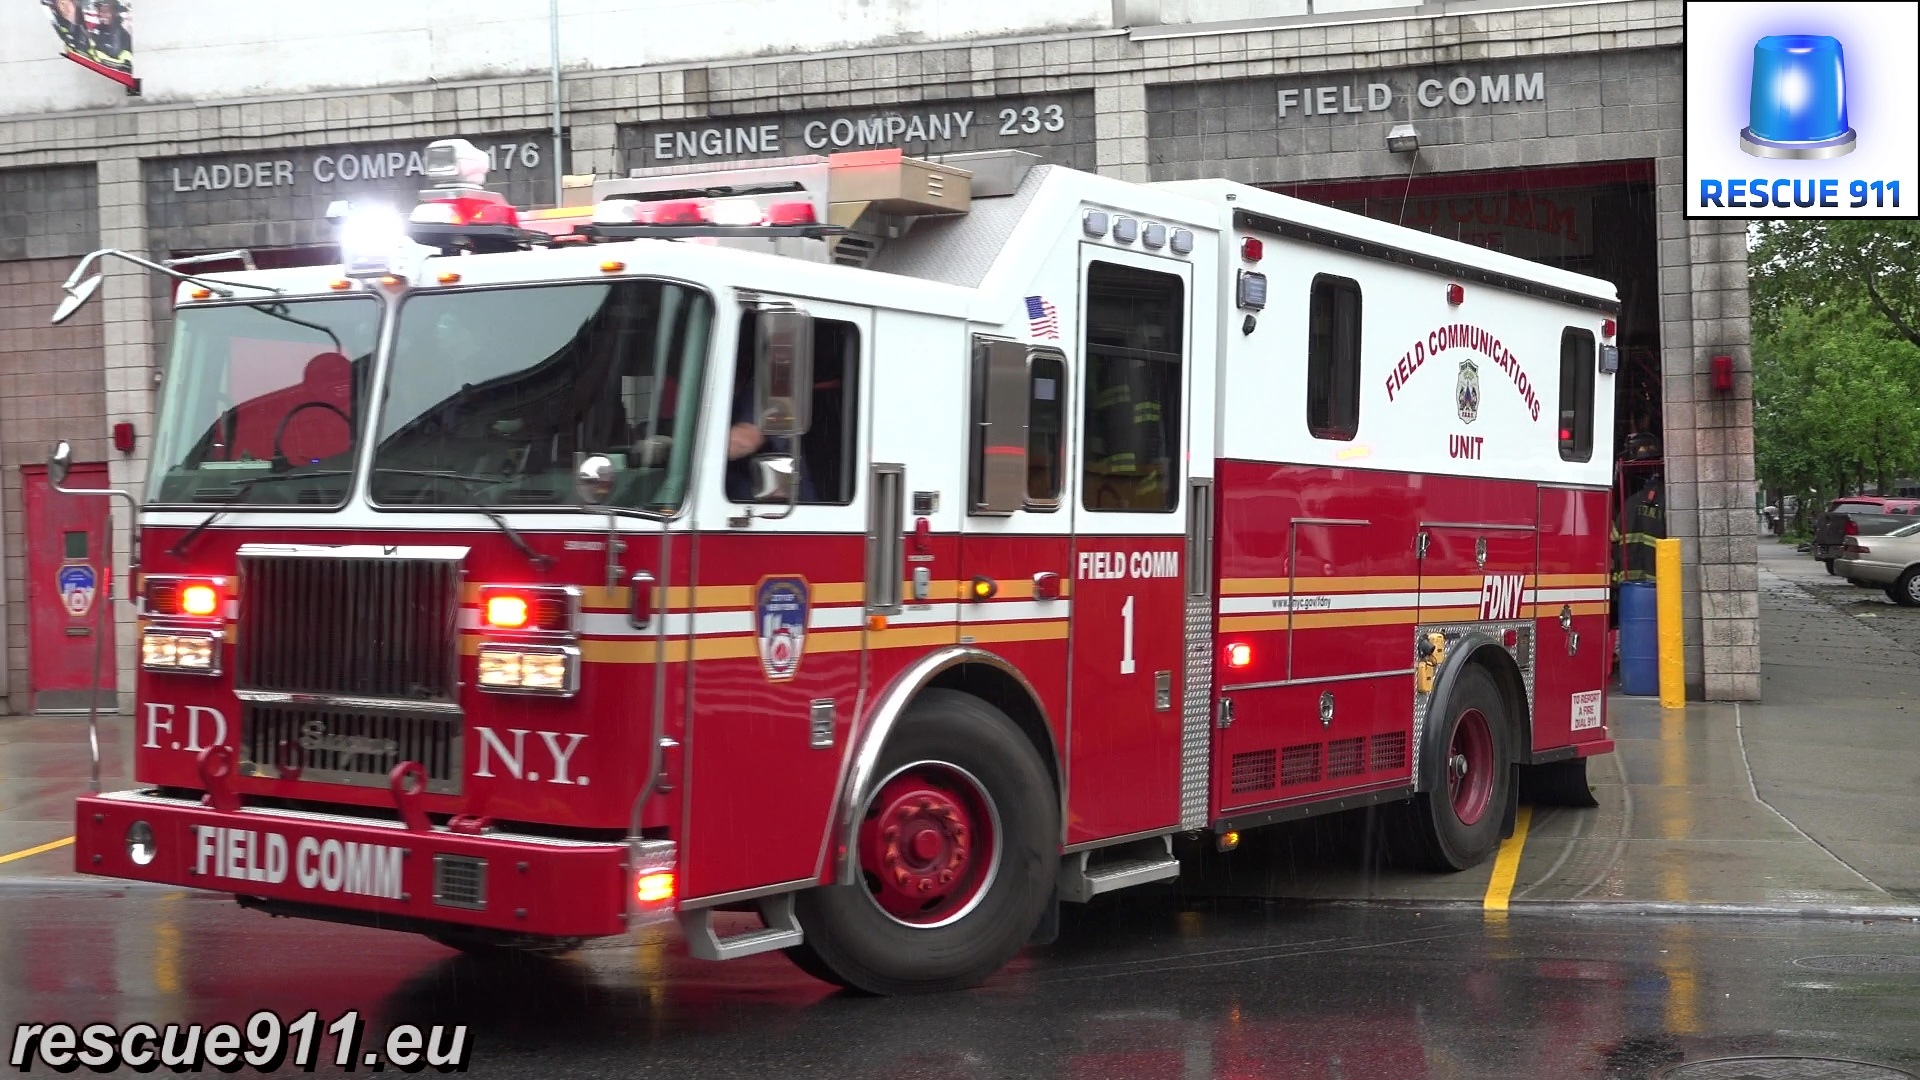 Field Comm 1 + Field Comm Battalion + Ladder 176 FDNY (stream)